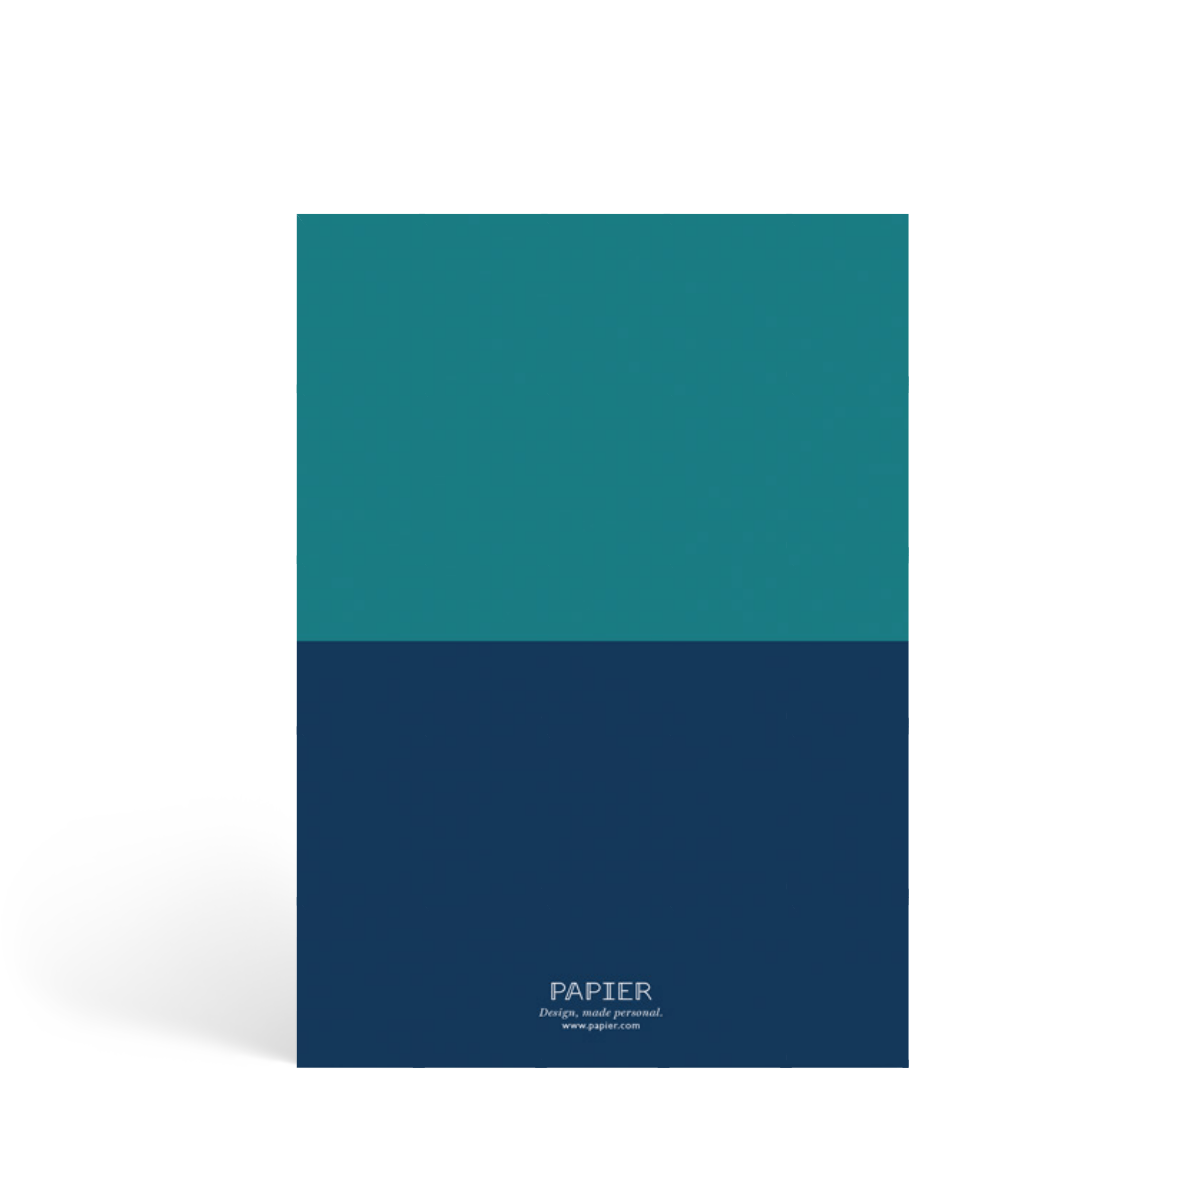 Https%3a%2f%2fwww.papier.com%2fproduct image%2f67267%2f5%2fcolourblock teal navy 15948 back 1551095809.png?ixlib=rb 1.1